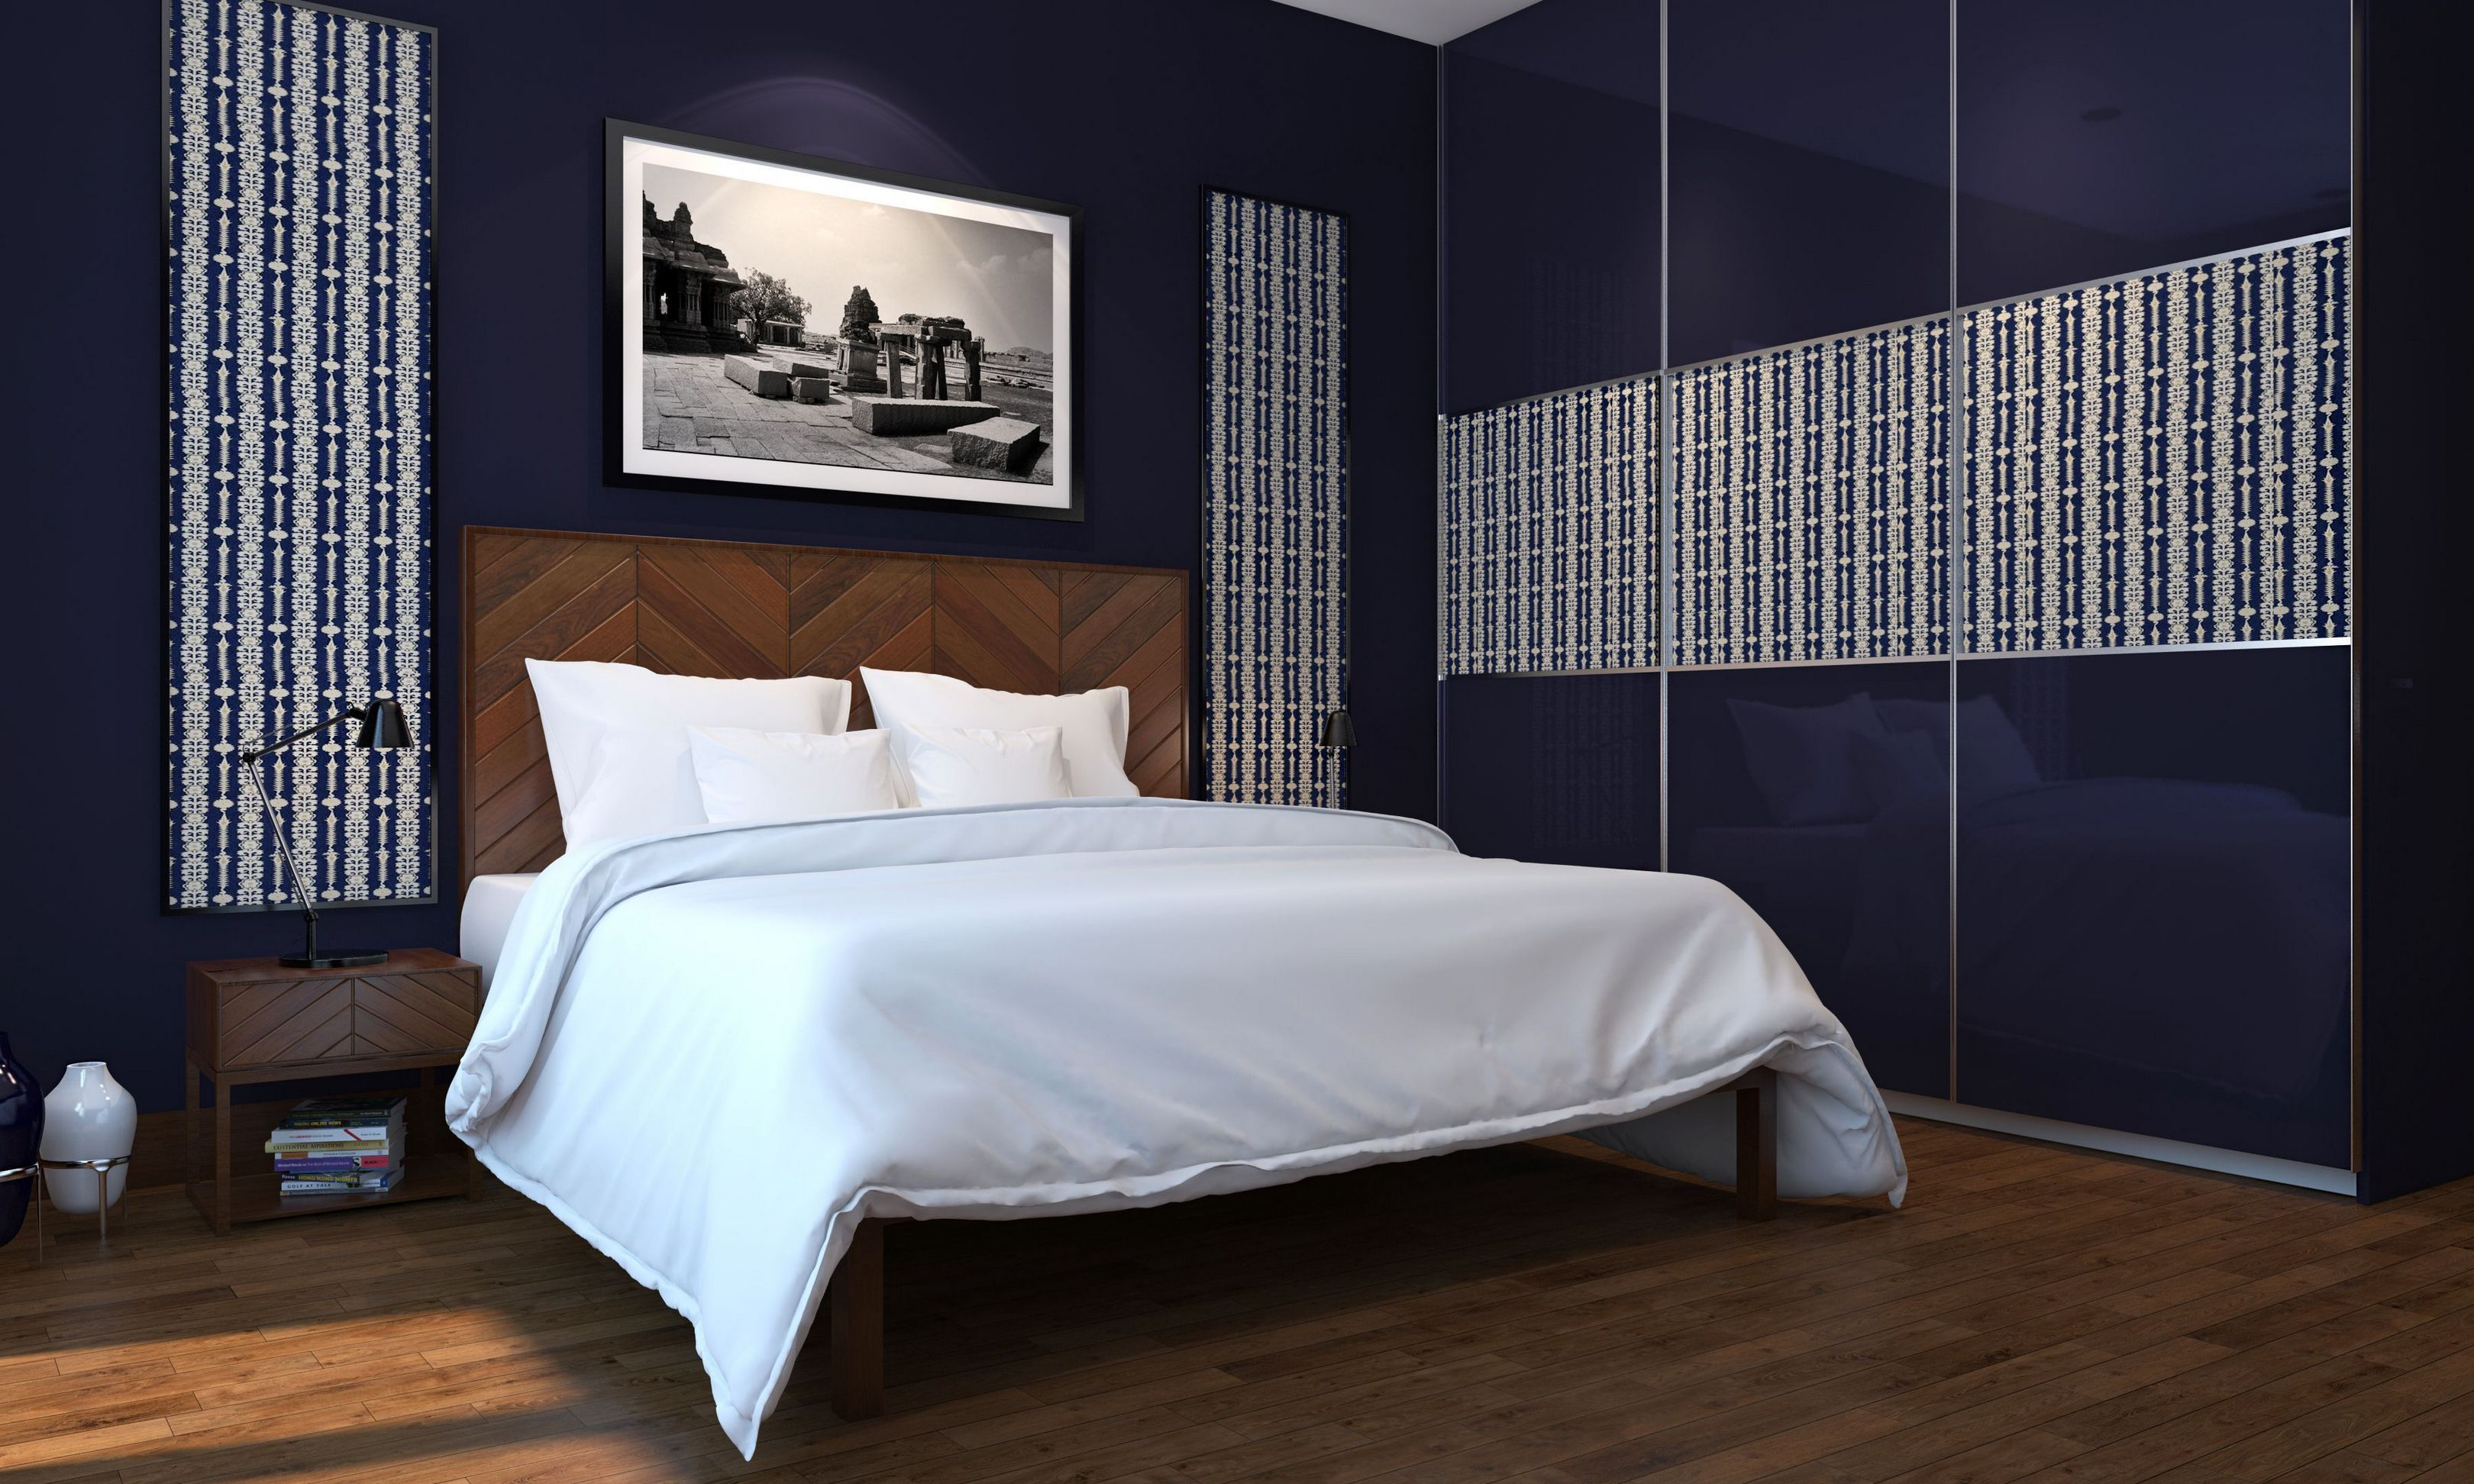 40 The Number One Article On Indian Bedroom Design In 2020 Modern Bedroom Interior Small Bedroom Interior Bedroom Designs For Couples